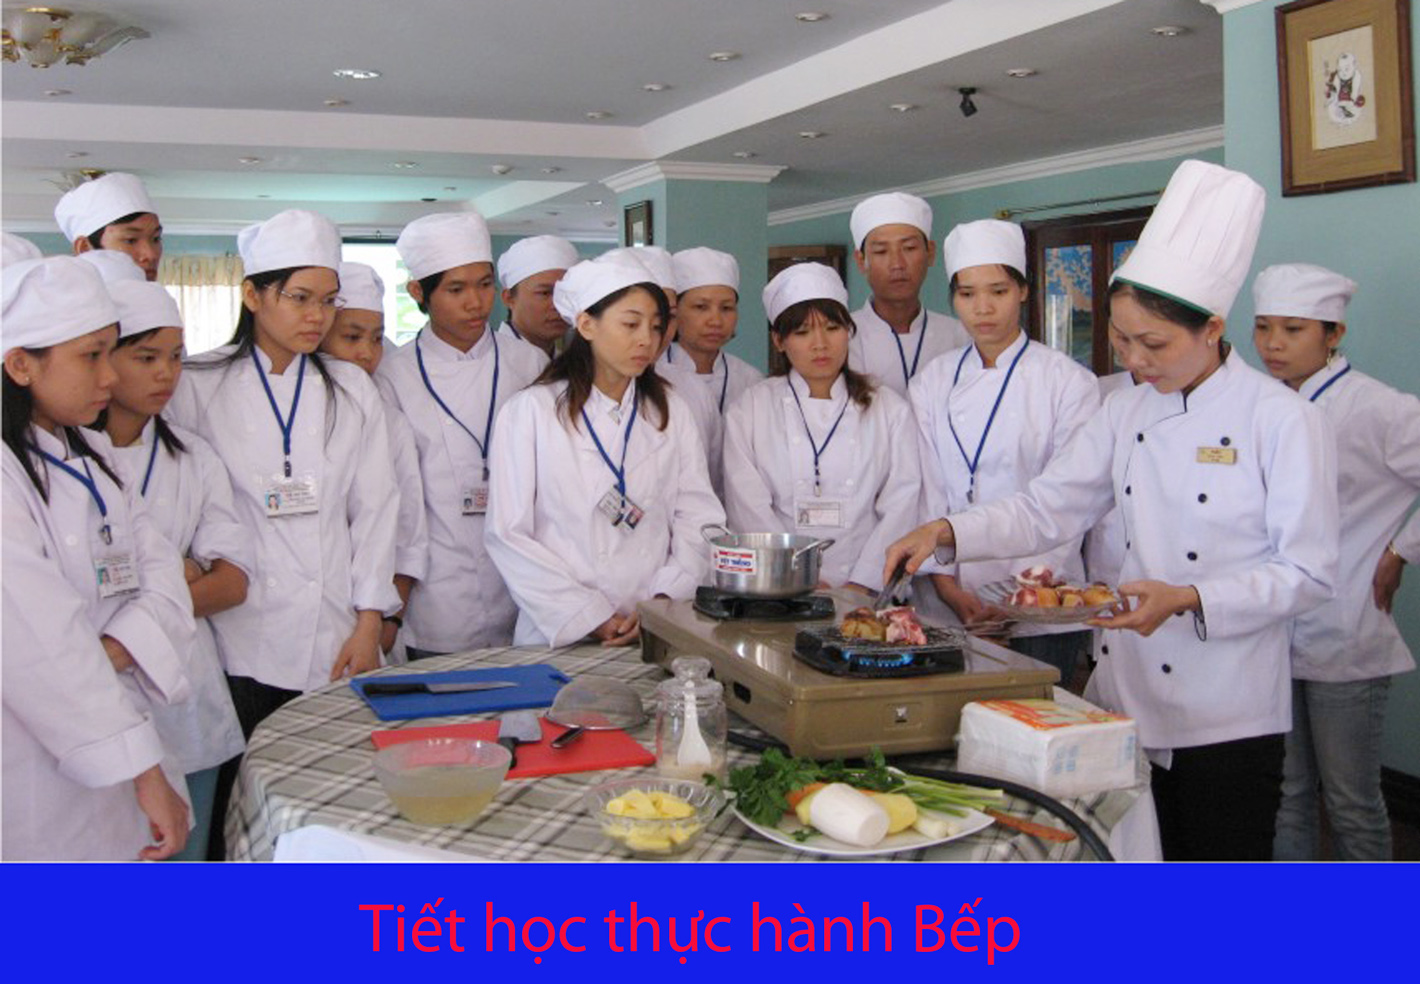 Thumbnail image for /ThuVienAnh/Cooking.jpg